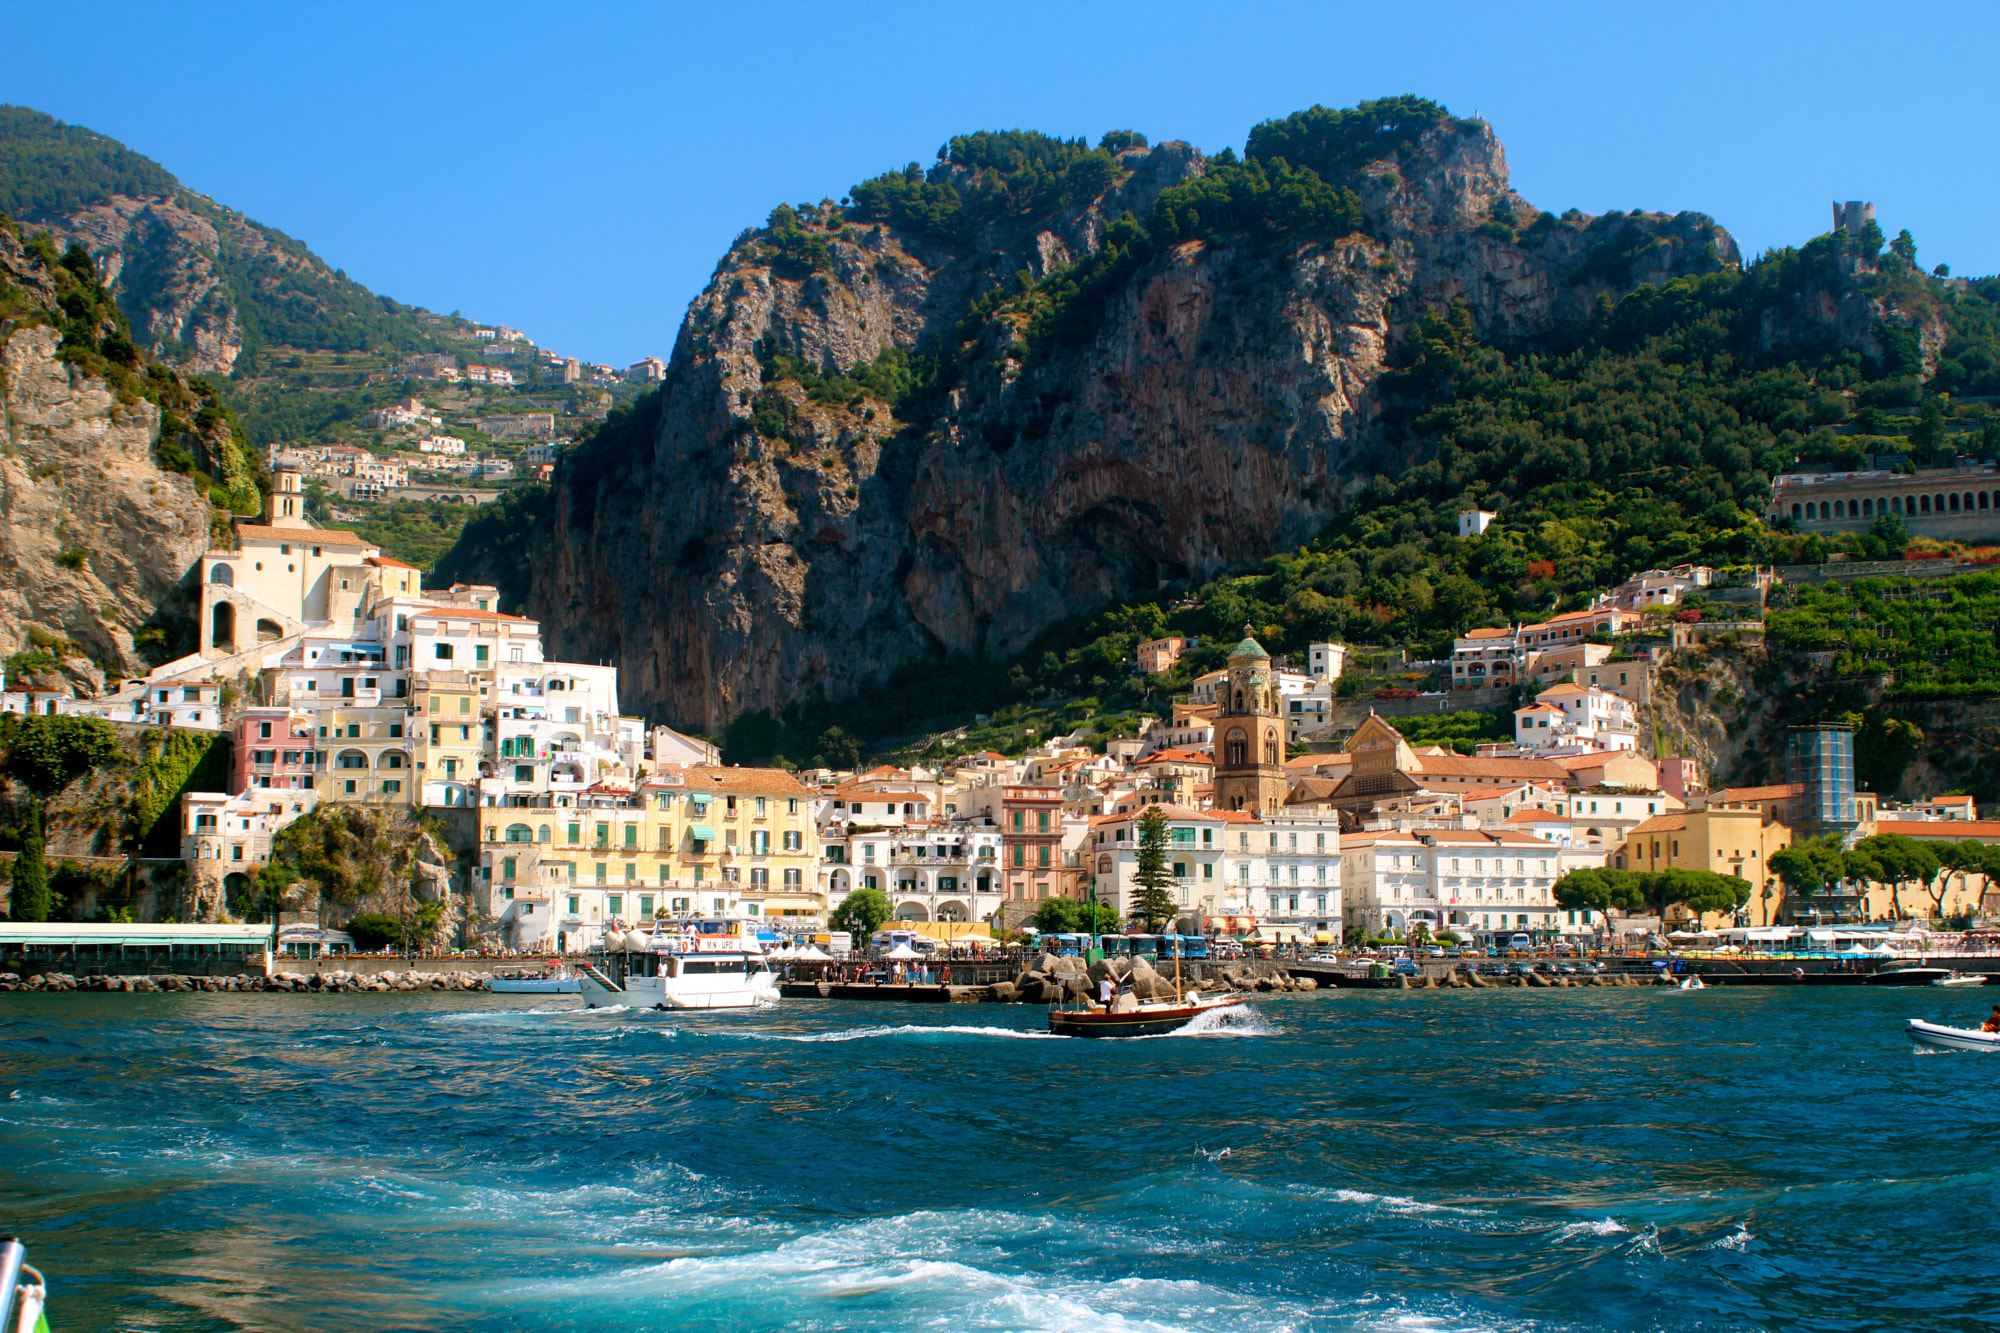 Getting to The Amalfi Coast, Italy